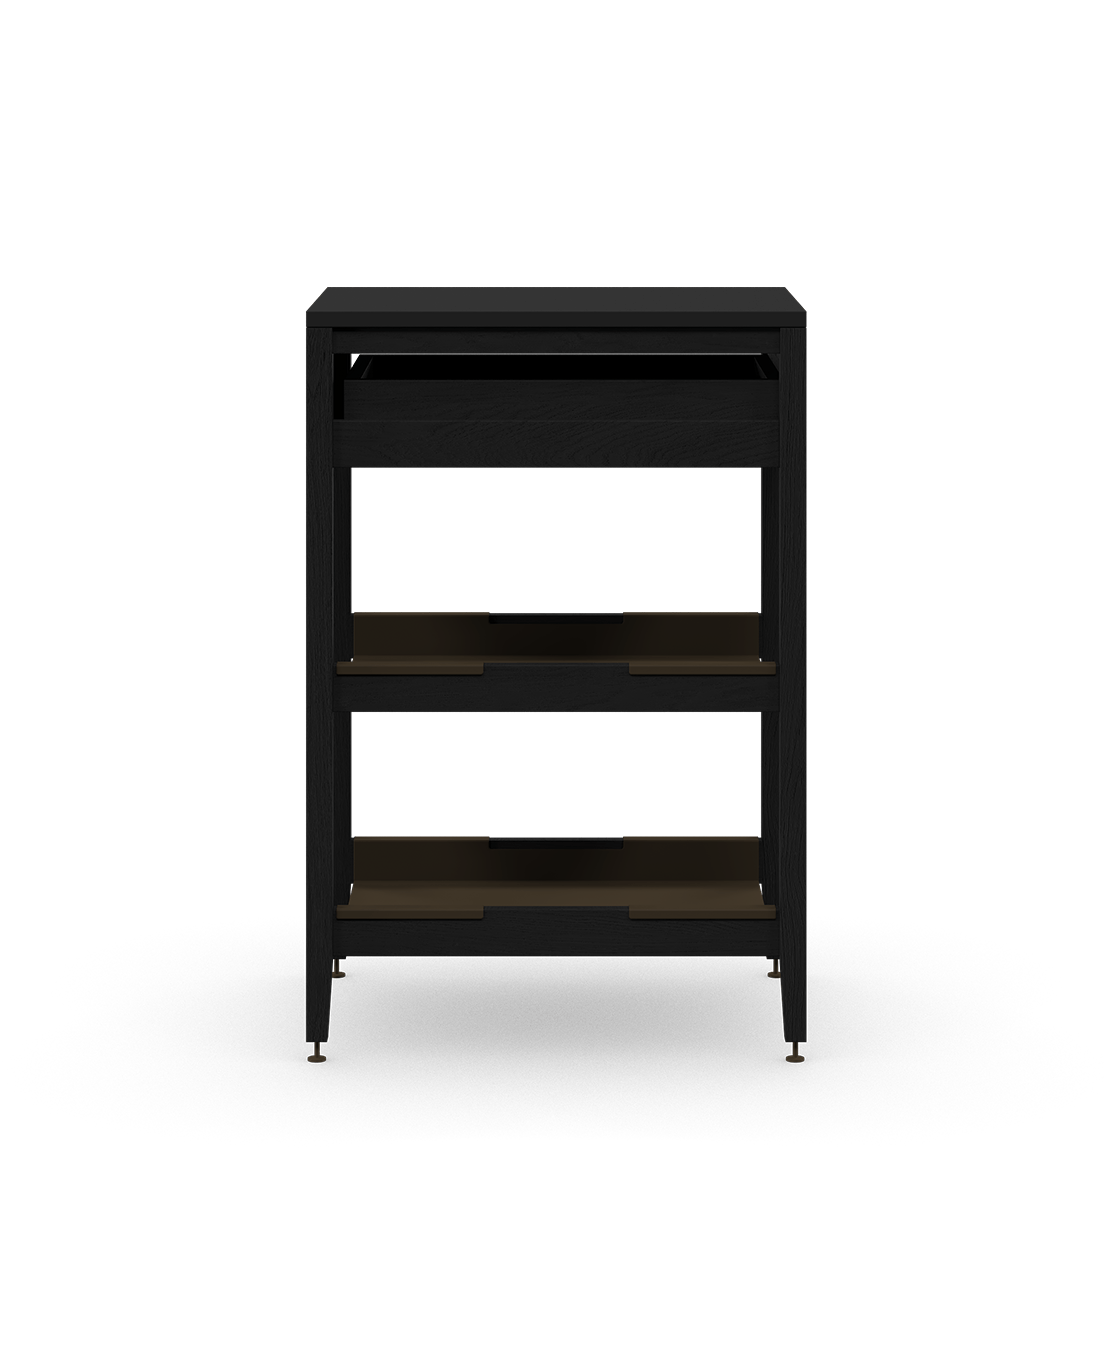 coquo radix midnight black stained oak solid wood modular 2 shelves 1 drawer base kitchen cabinet 18 inch C1-C-18SB-1021-BK